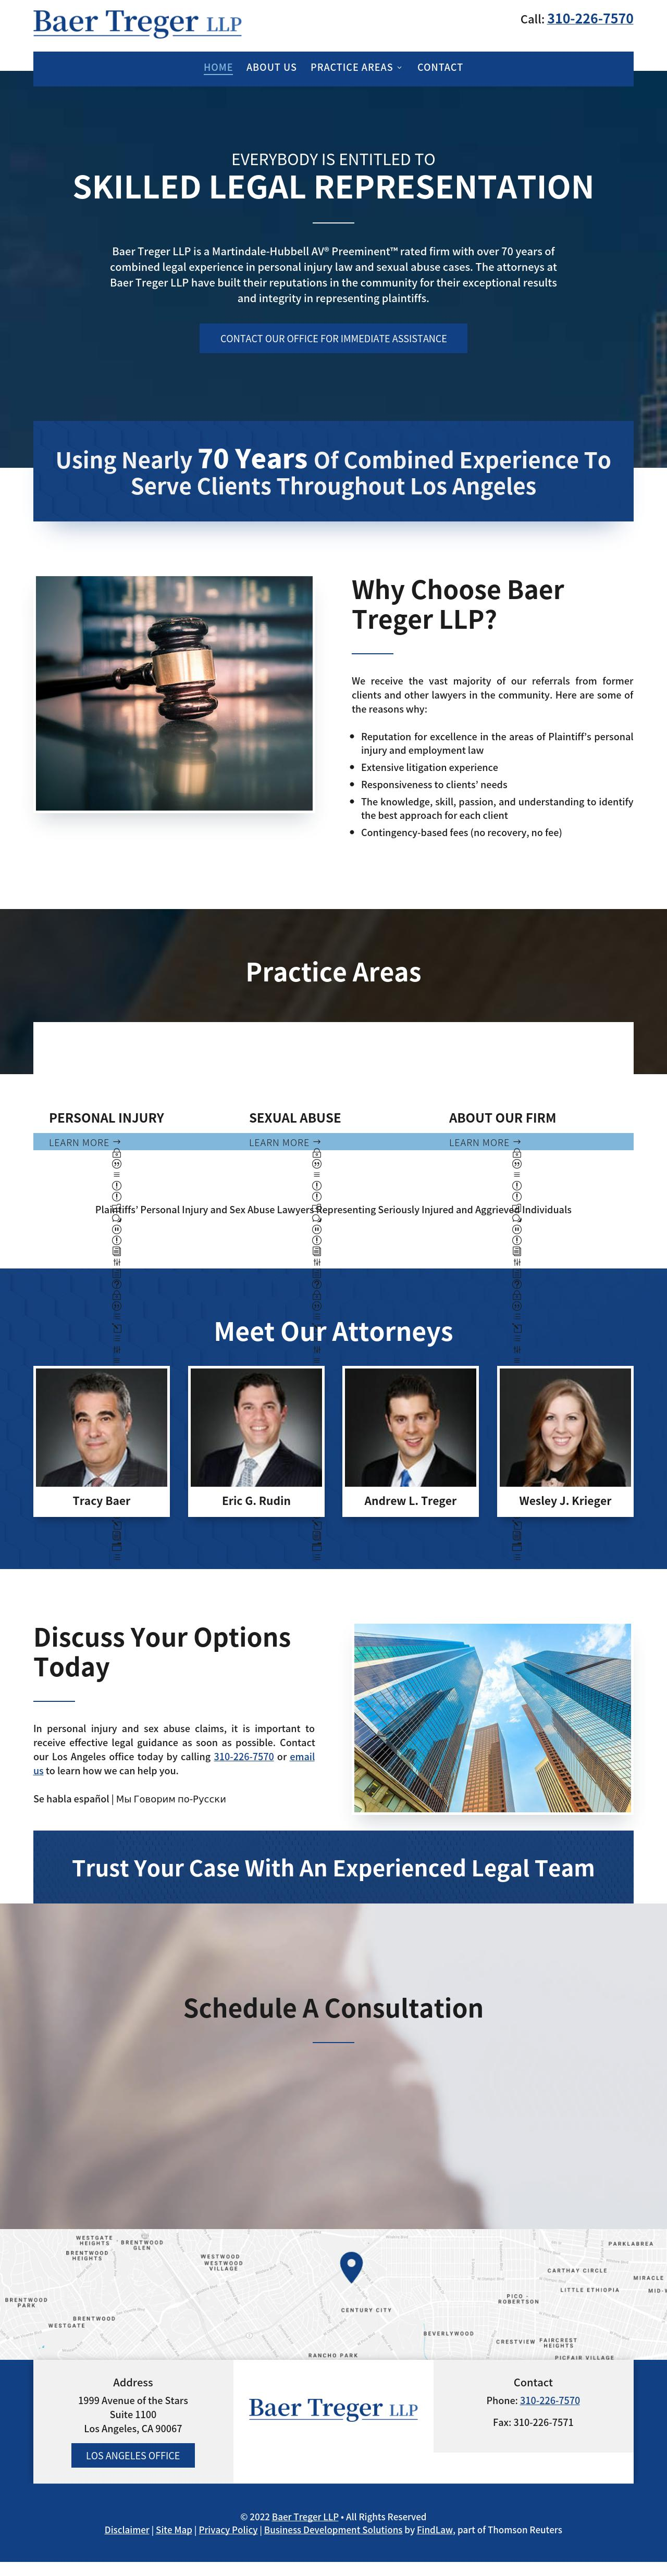 Baer Treger LLP - Los Angeles CA Lawyers